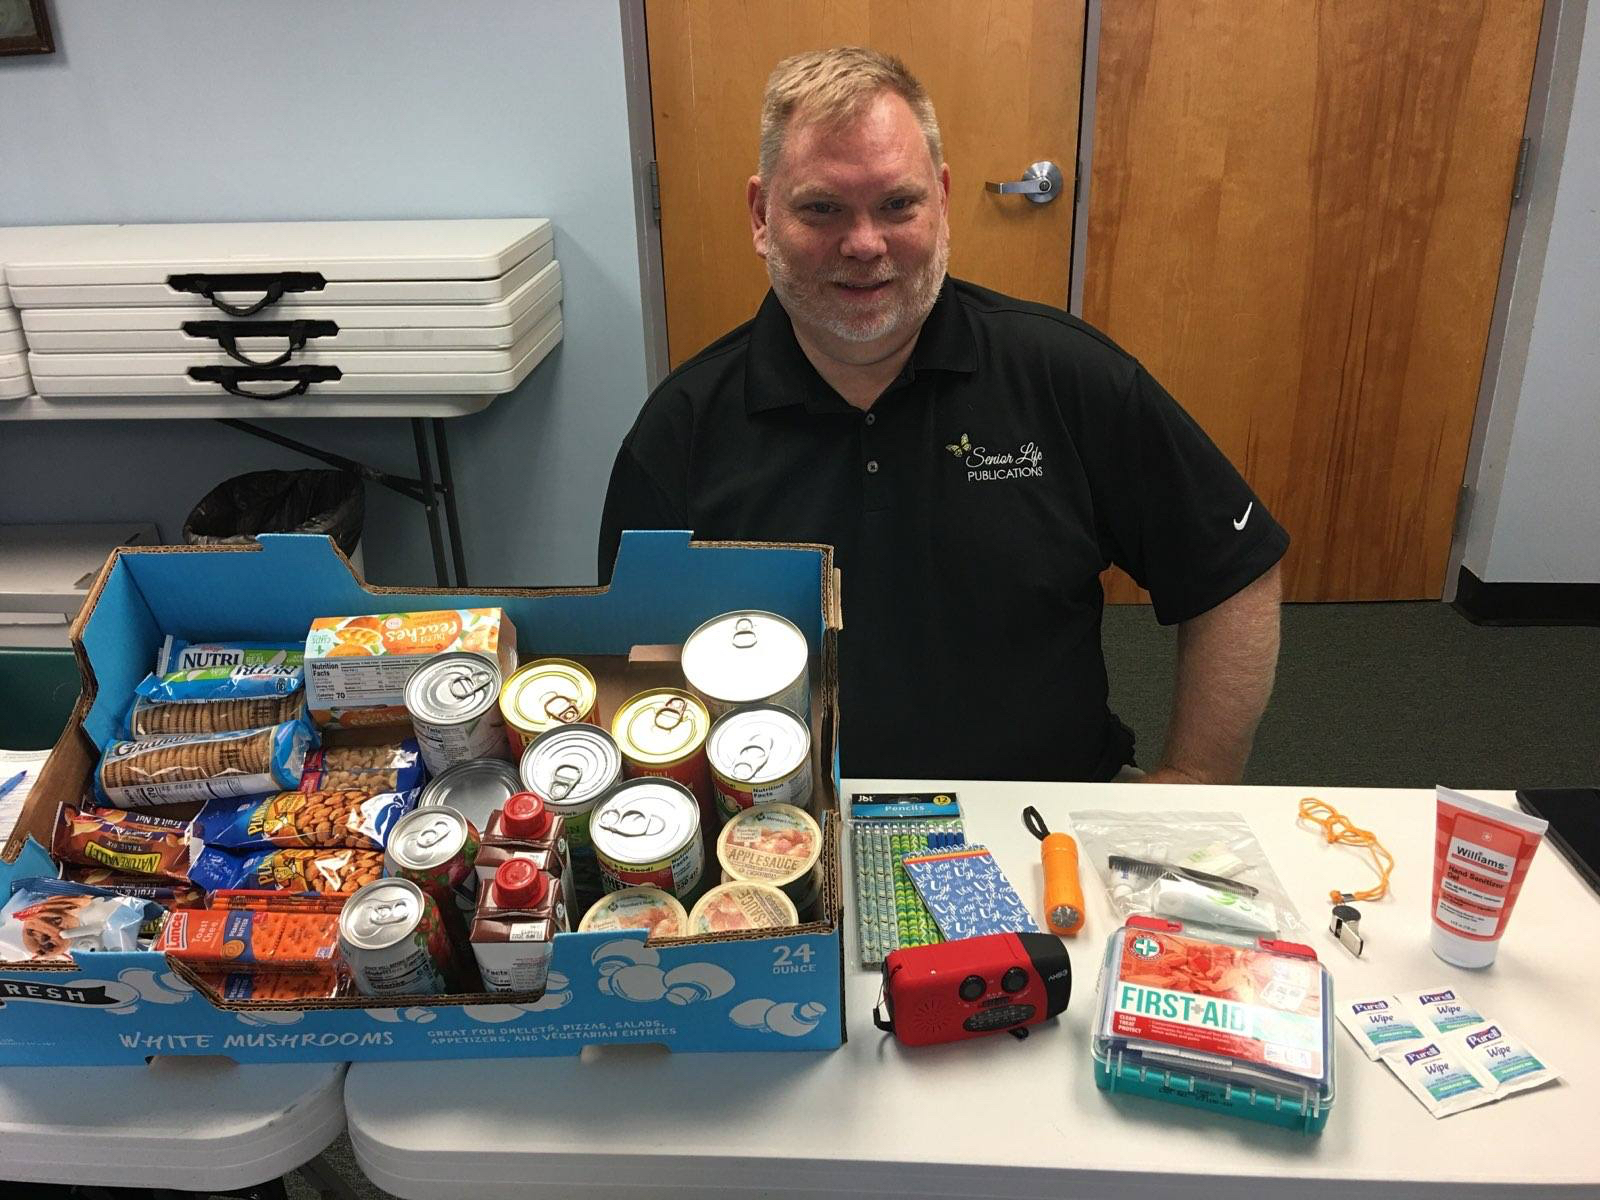 A man in an office with canned food and emergency supplies on his desk